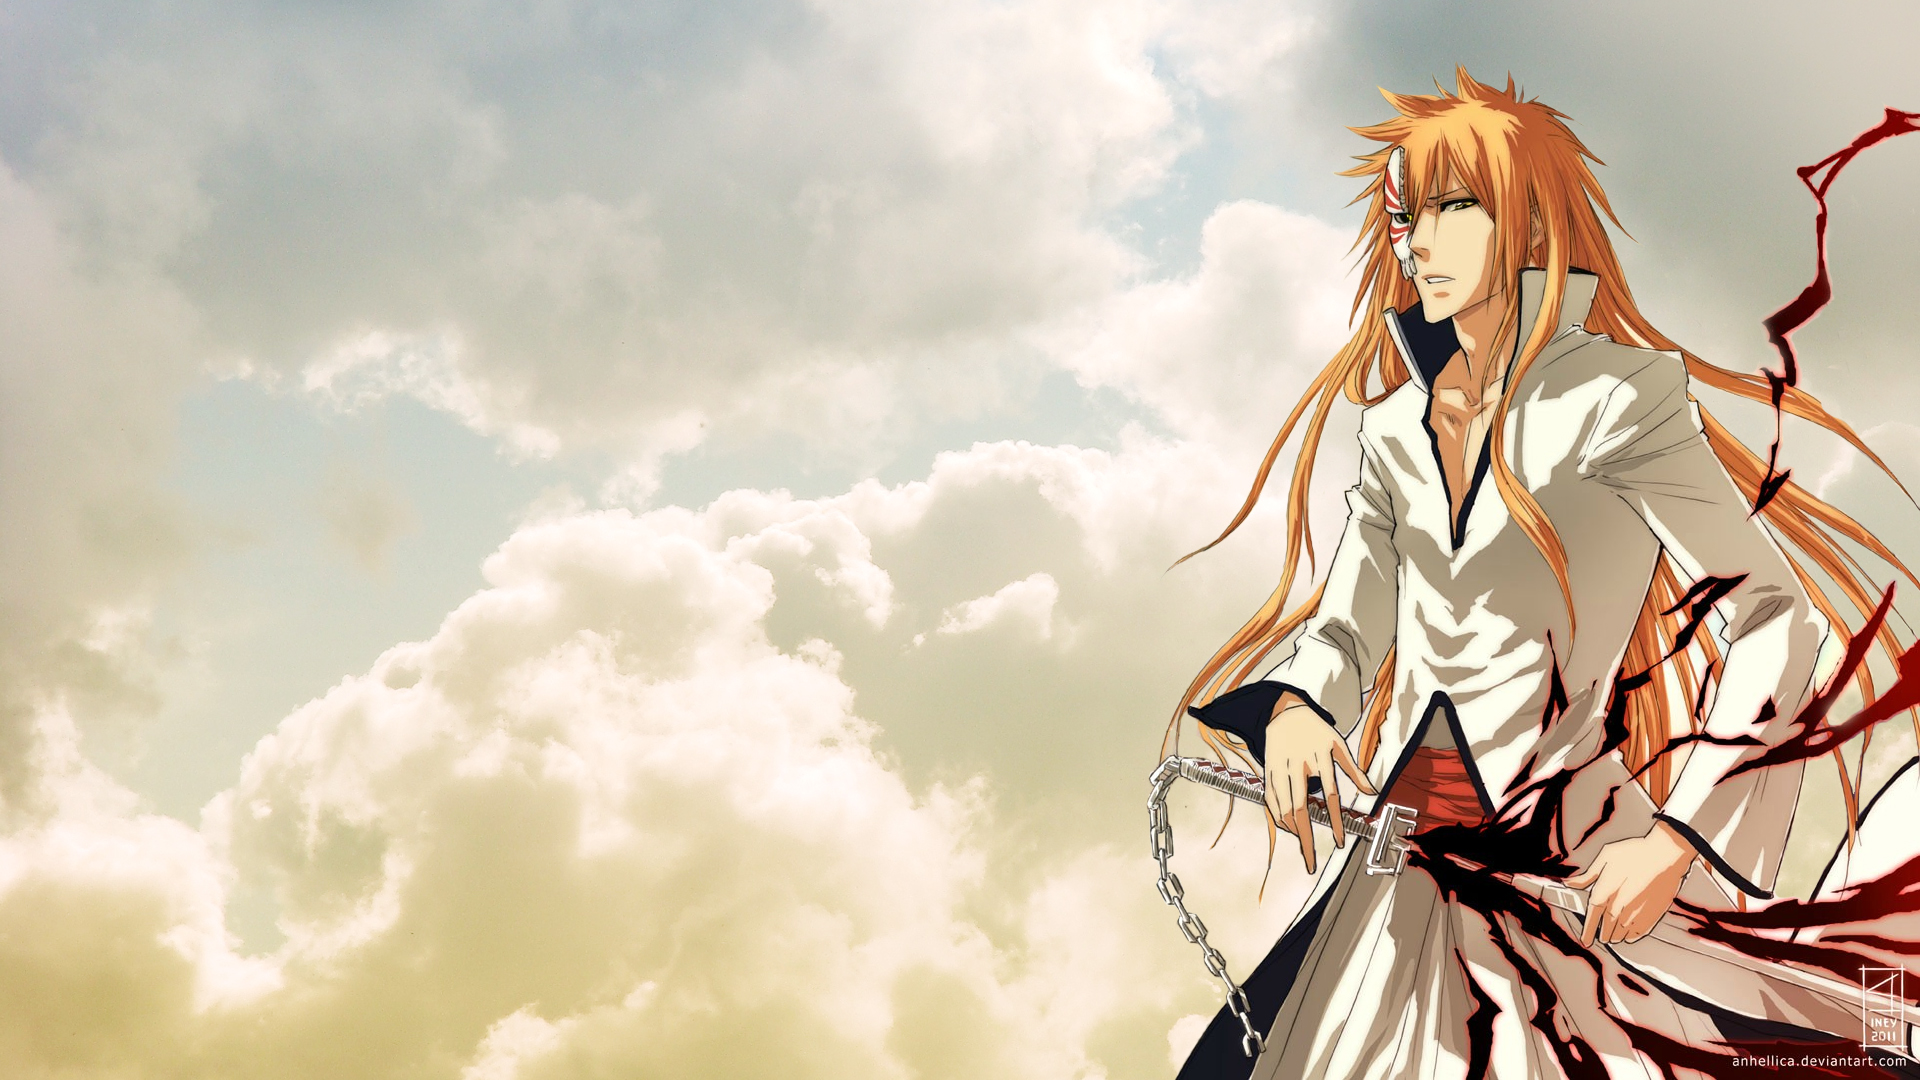 Bleach hd wallpaper background image 1920x1080 id - Wallpaper computer anime ...